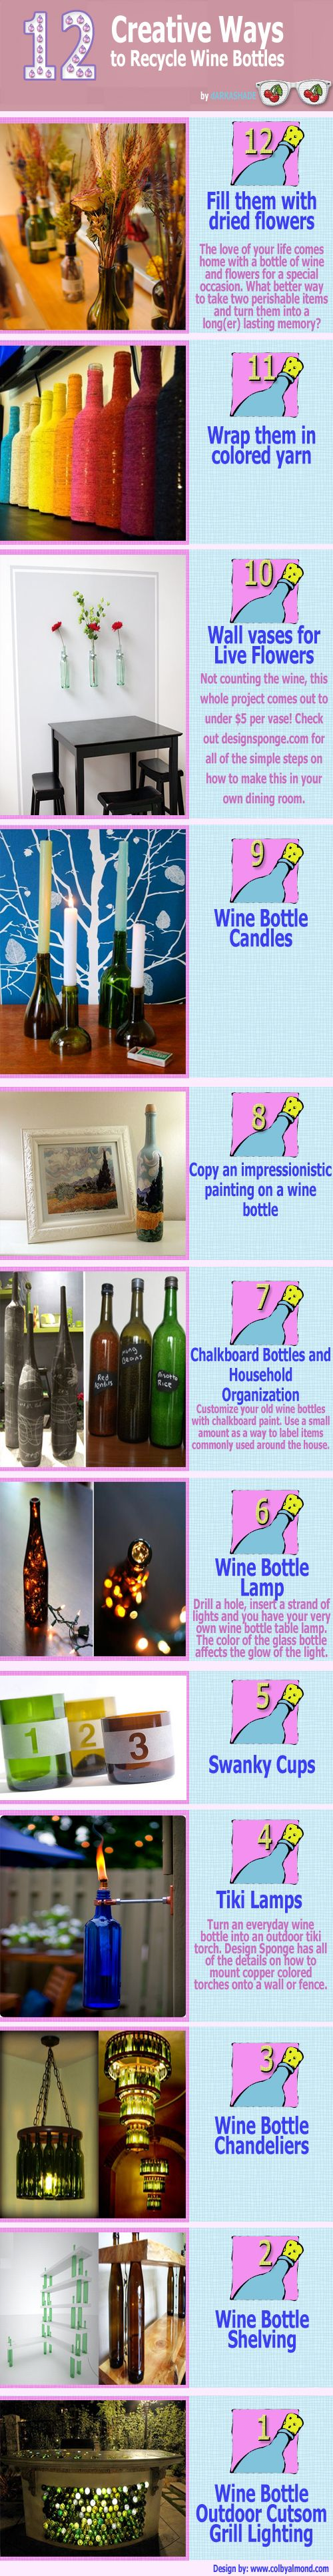 Wine Bottle RecyclingWine Bottle Crafts, Bottle Ideas, Recycled Wine Bottles, Recycle Wine Bottles, Cool Ideas, Empty Wine Bottle, Things To Do, Winebottle, Old Wine Bottle